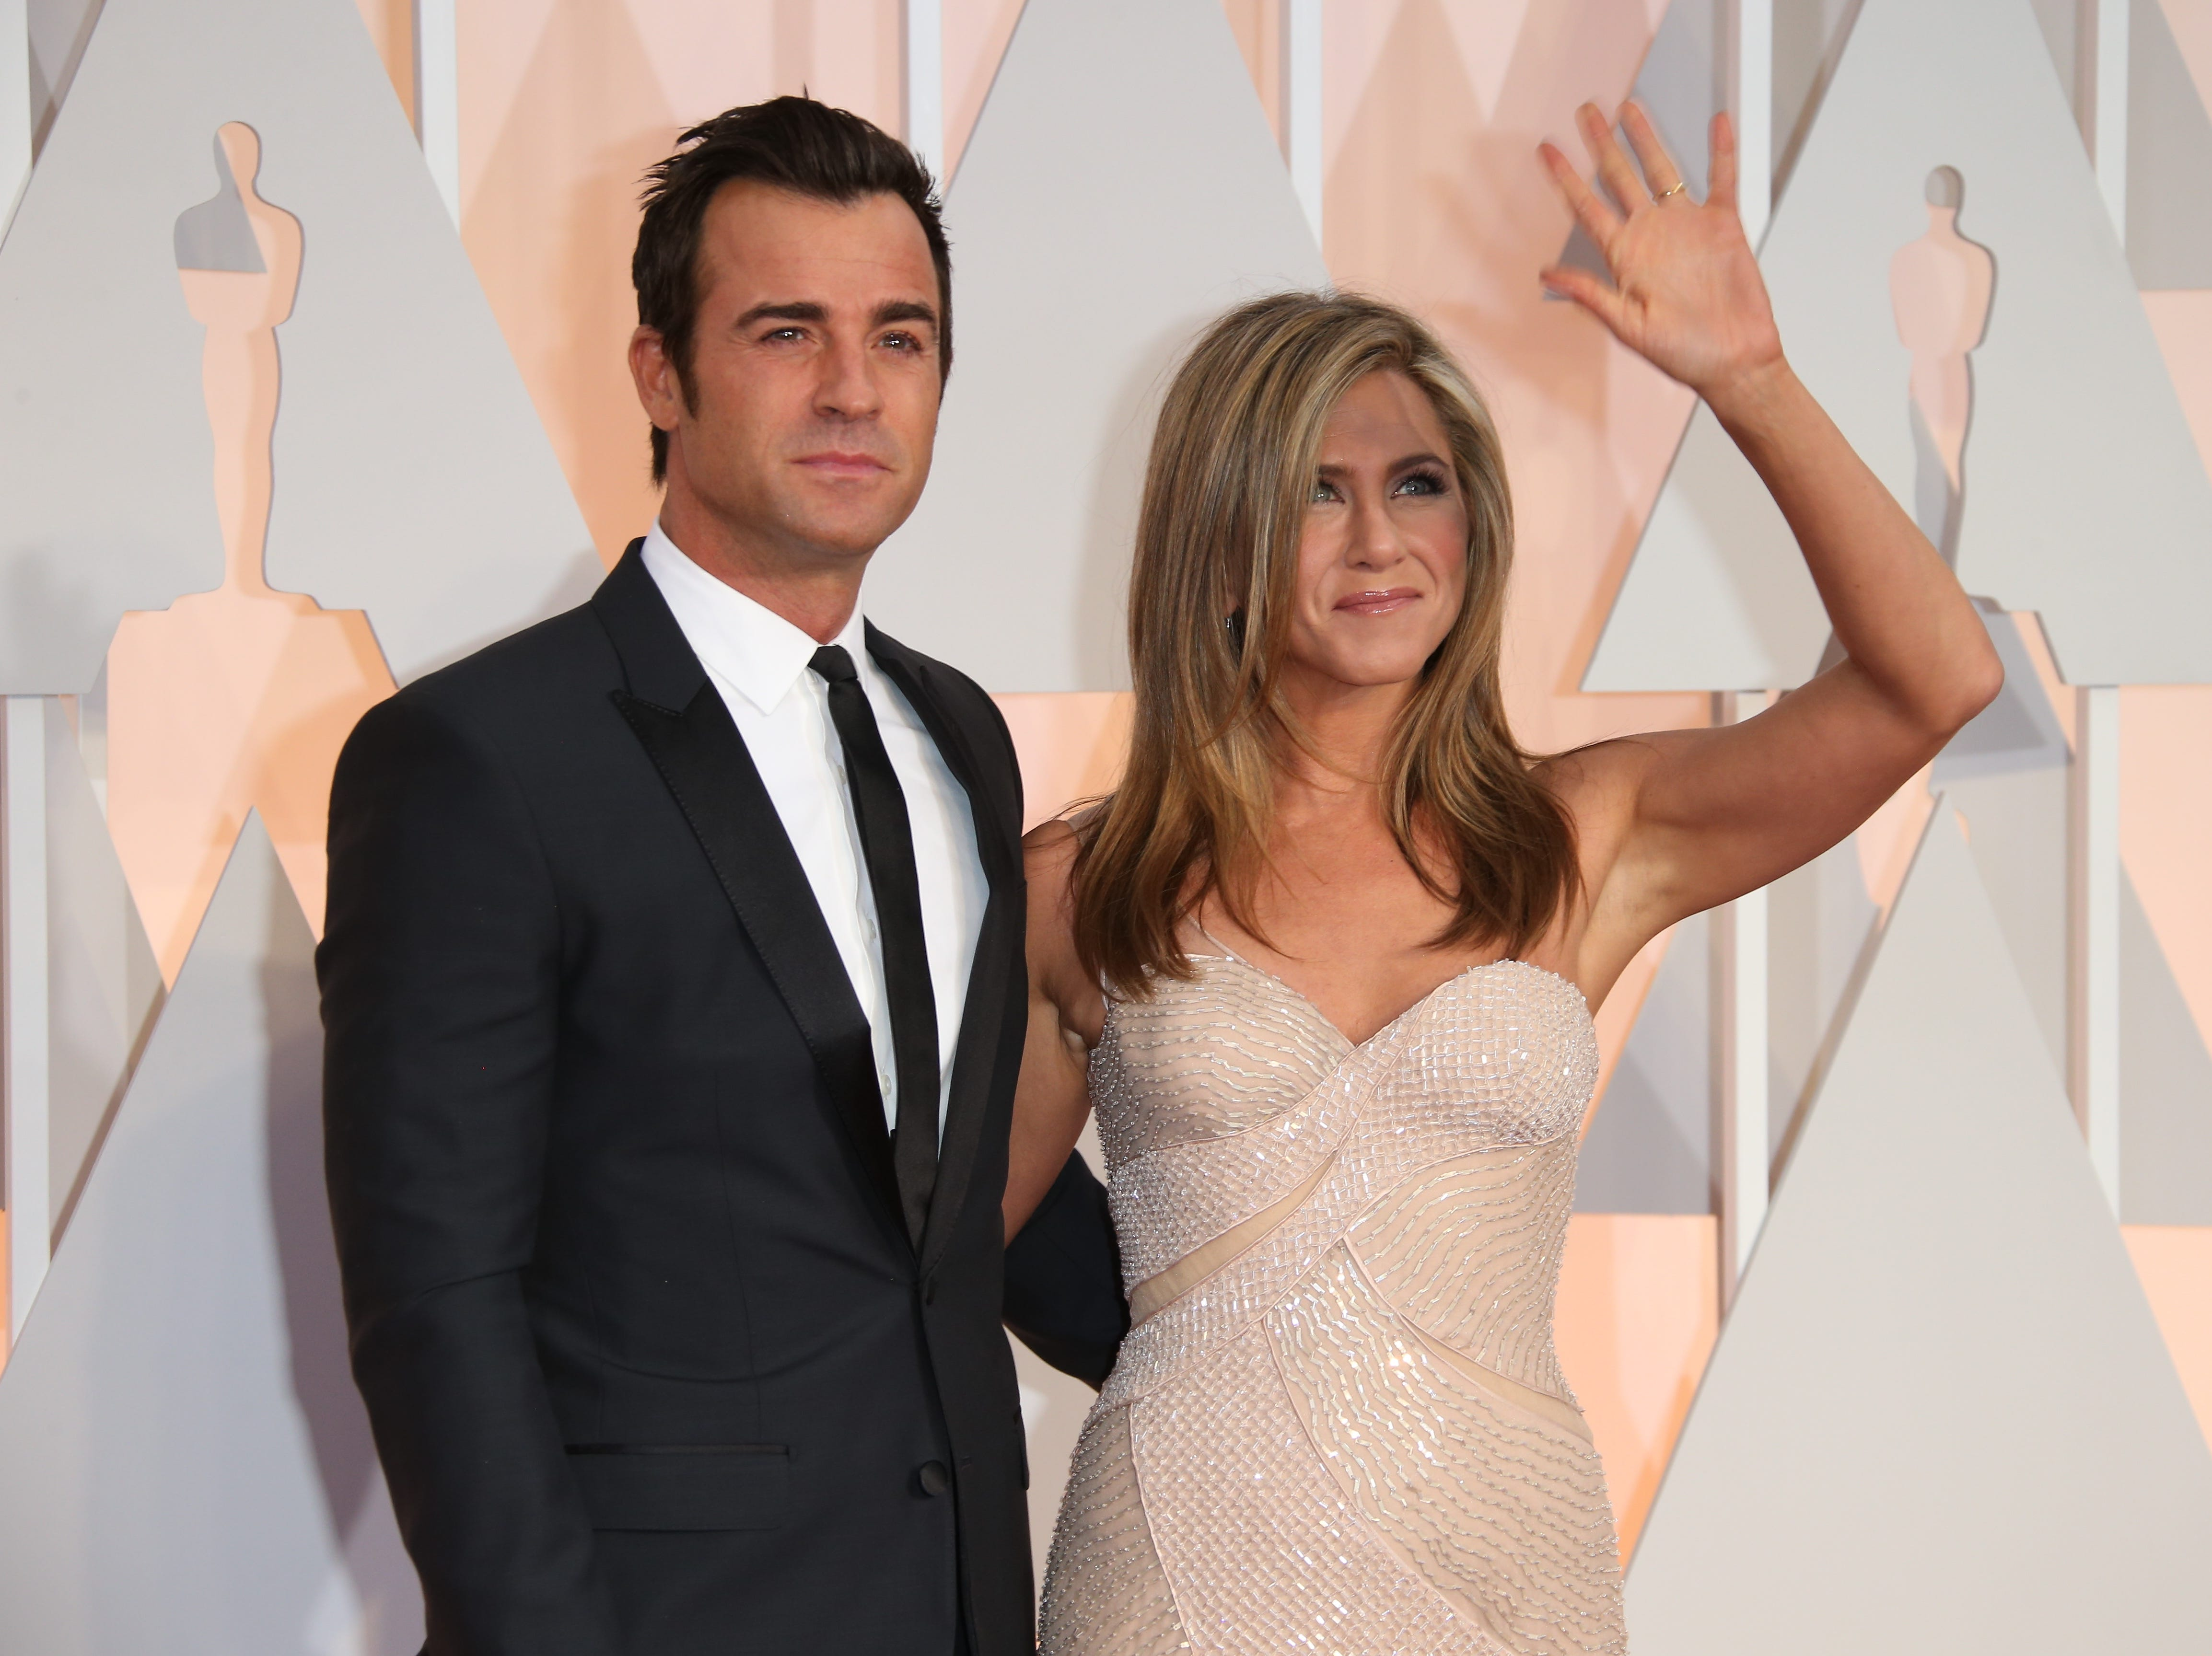 In August 2015, Theroux and Aniston tied the knot in a secret ceremony at their home on a Wednesday.